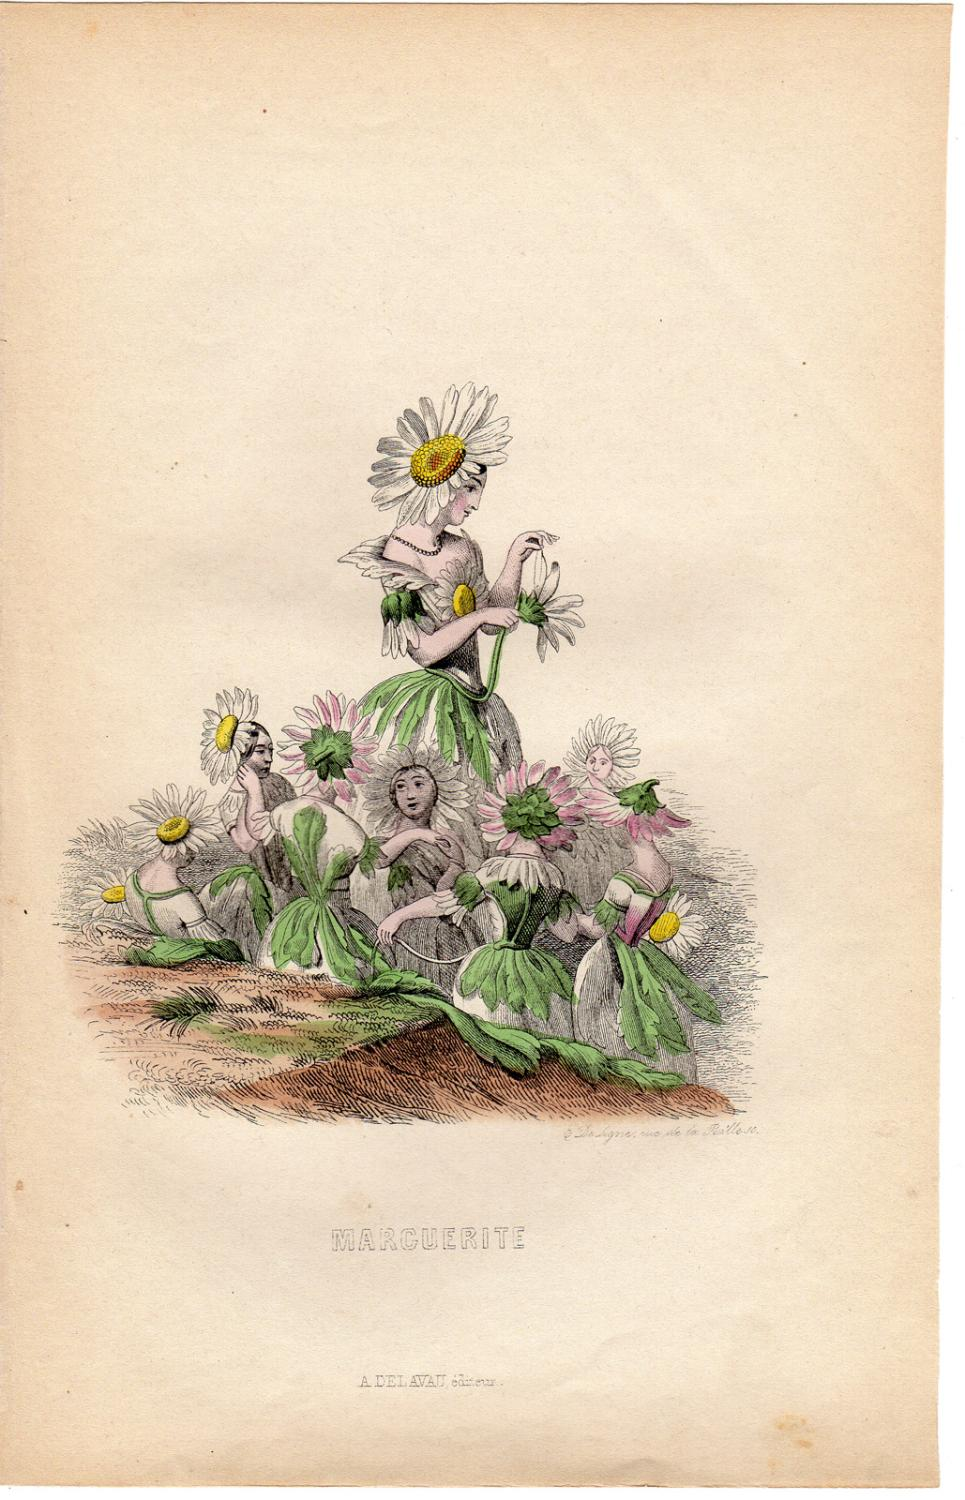 Antique Print-FLOWERS PERSONIFIED-DAISY-MARGUERITE-Grandville-1852 Very Good